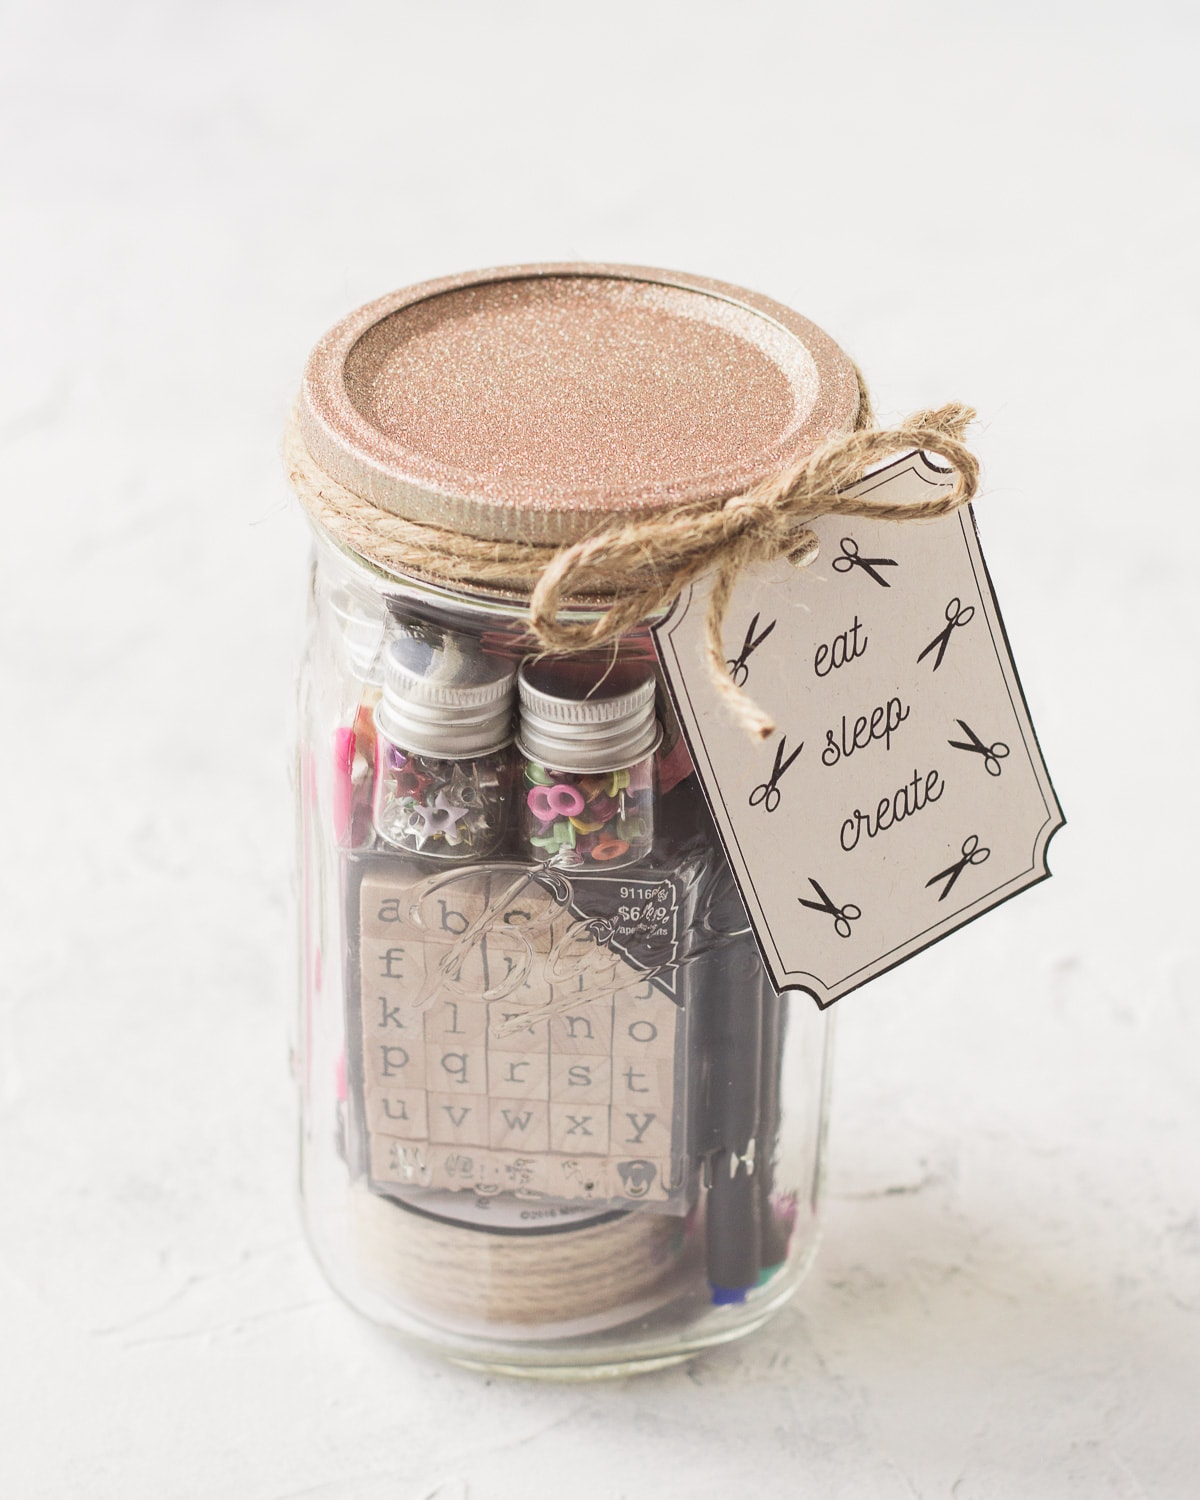 A mason jar gift filled with craft supplies and tied with a handmade gift tag.